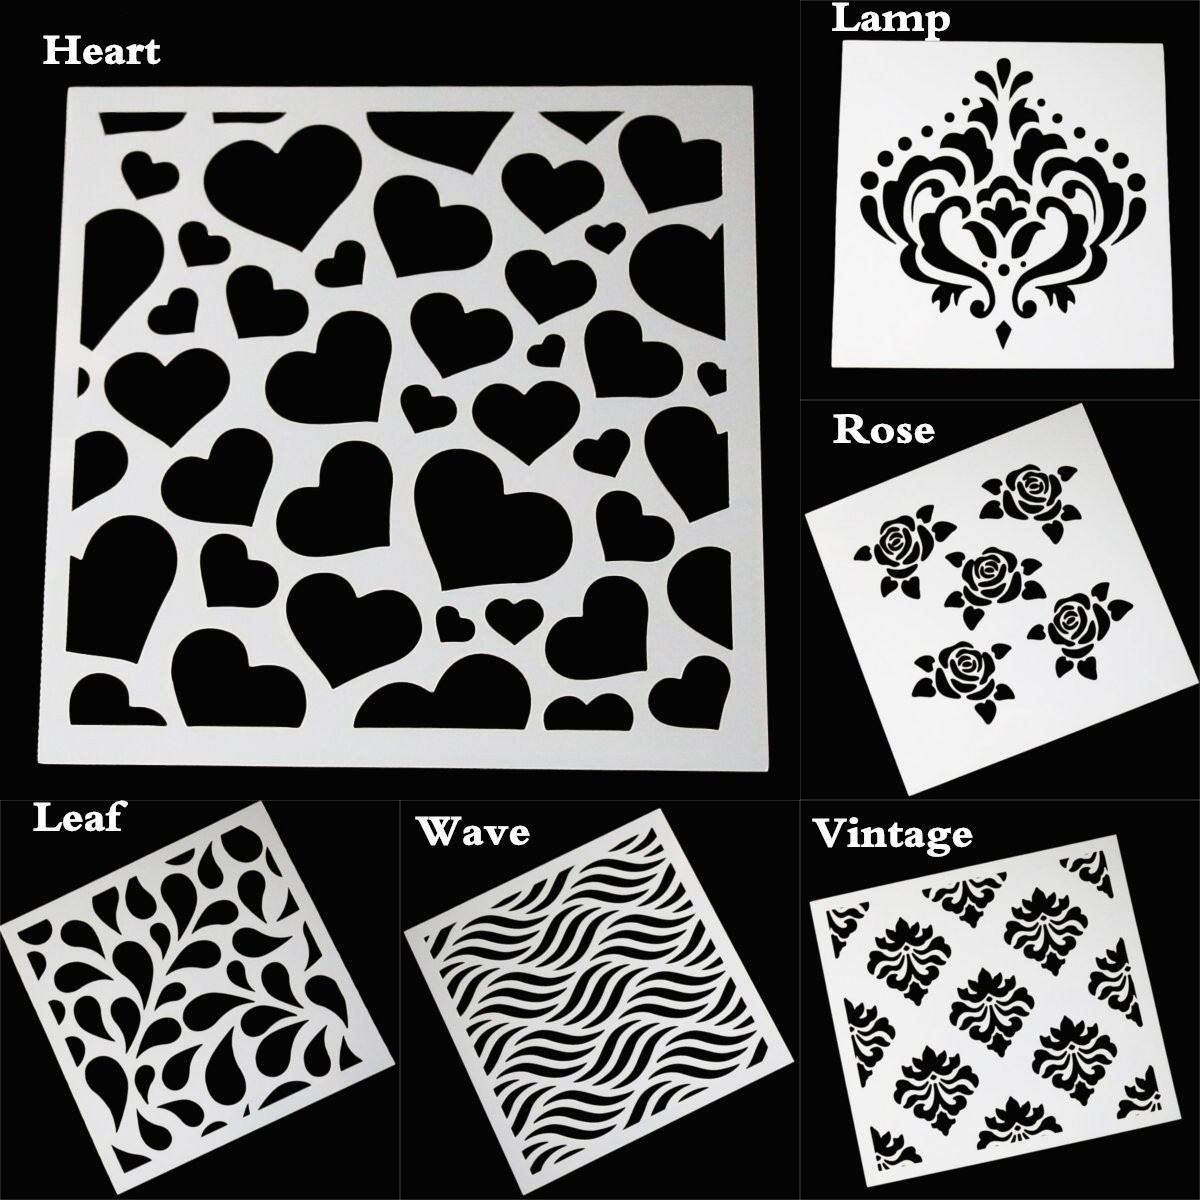 Rose Flower Heart Wave Painting Stencils Plastic Embossing Template ...